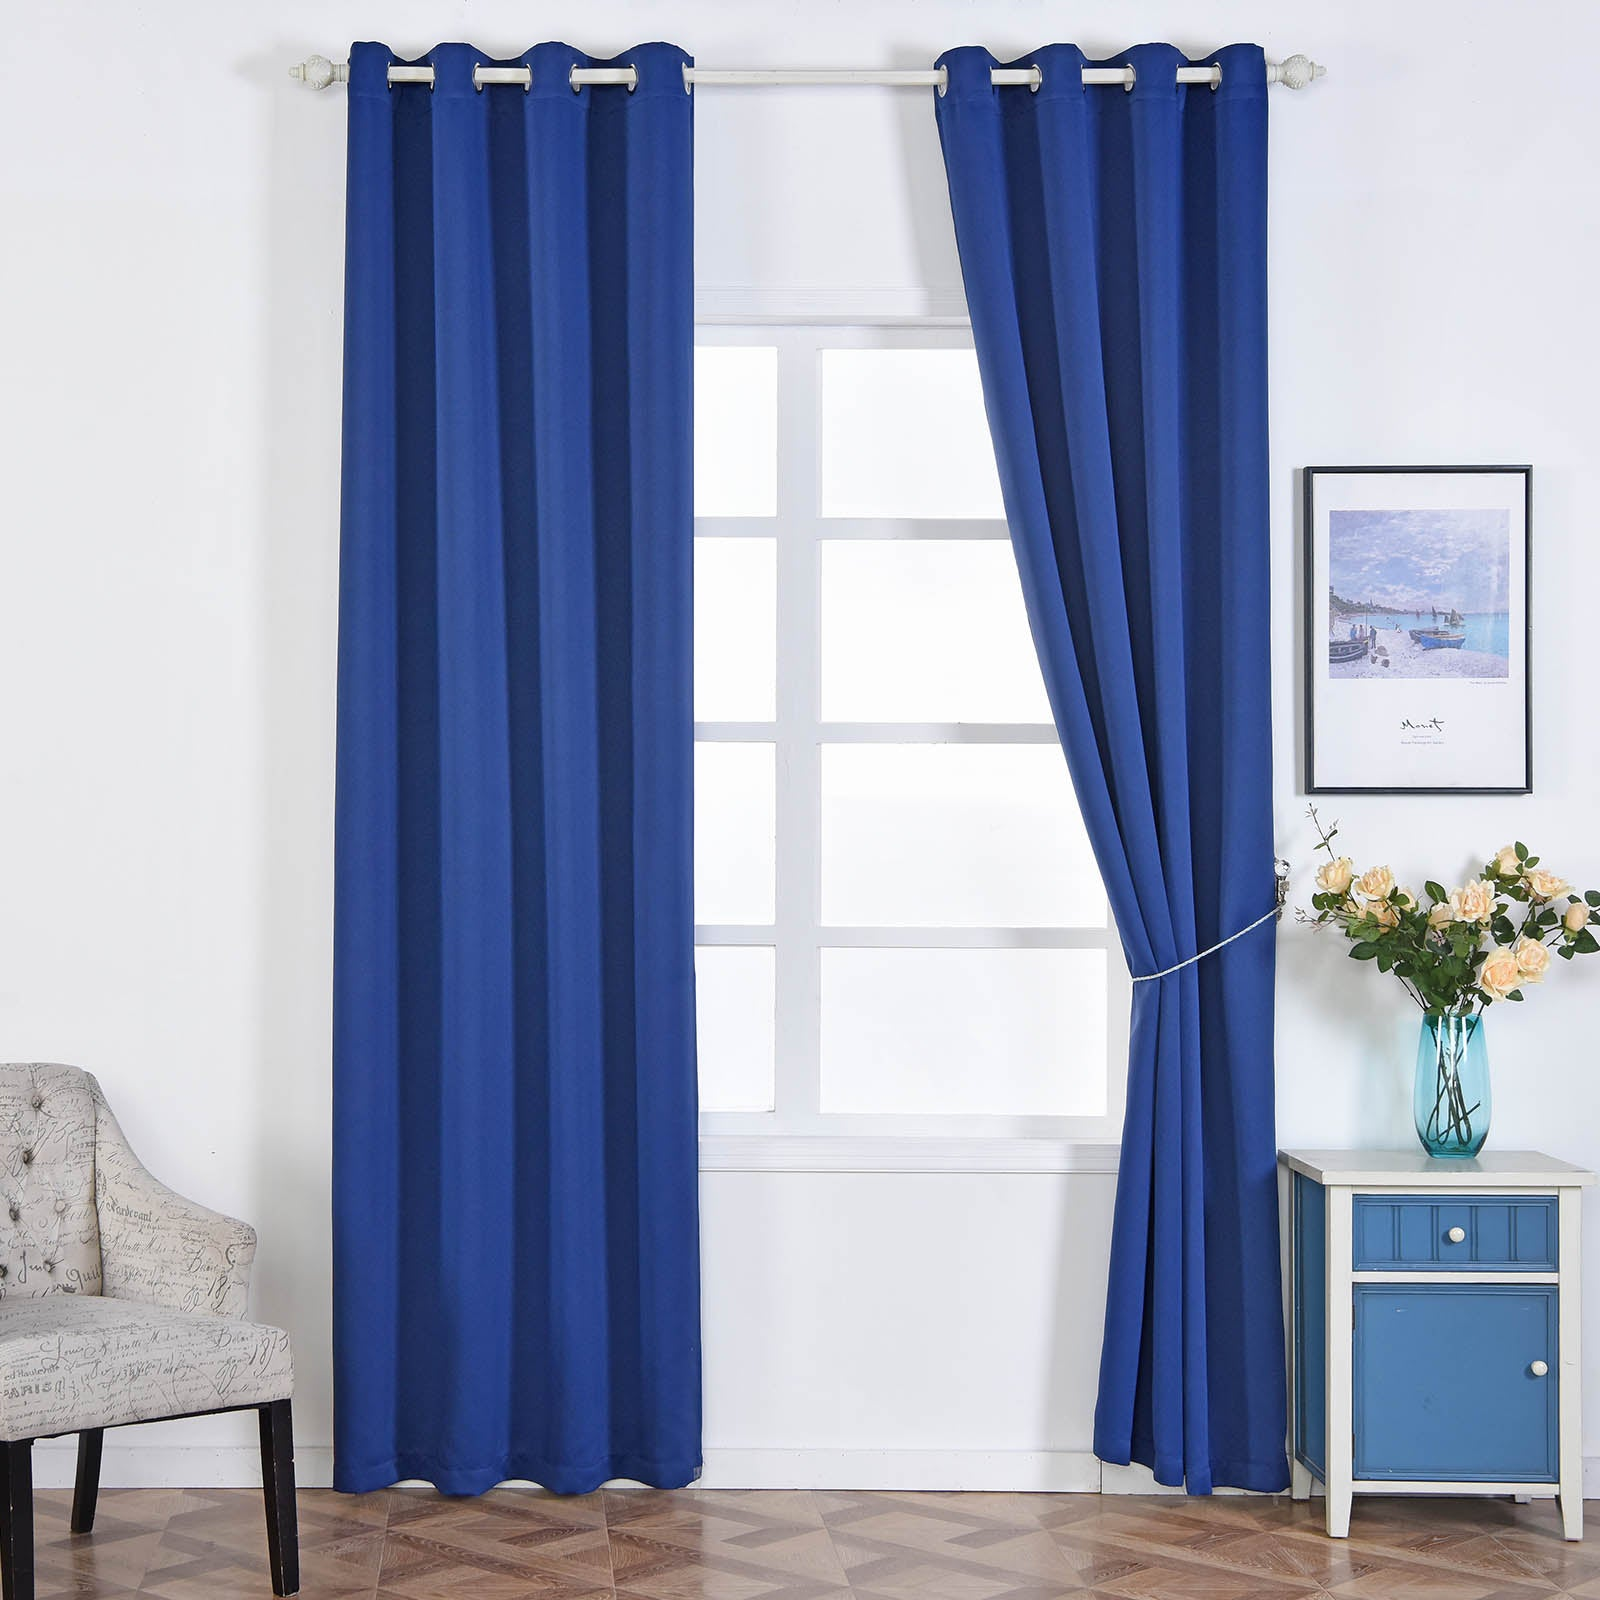 d i navy pinterest cor dot on this pin lush curtain set zulily panel of seville polka blackout zulilyfinds love by window want things curtains two